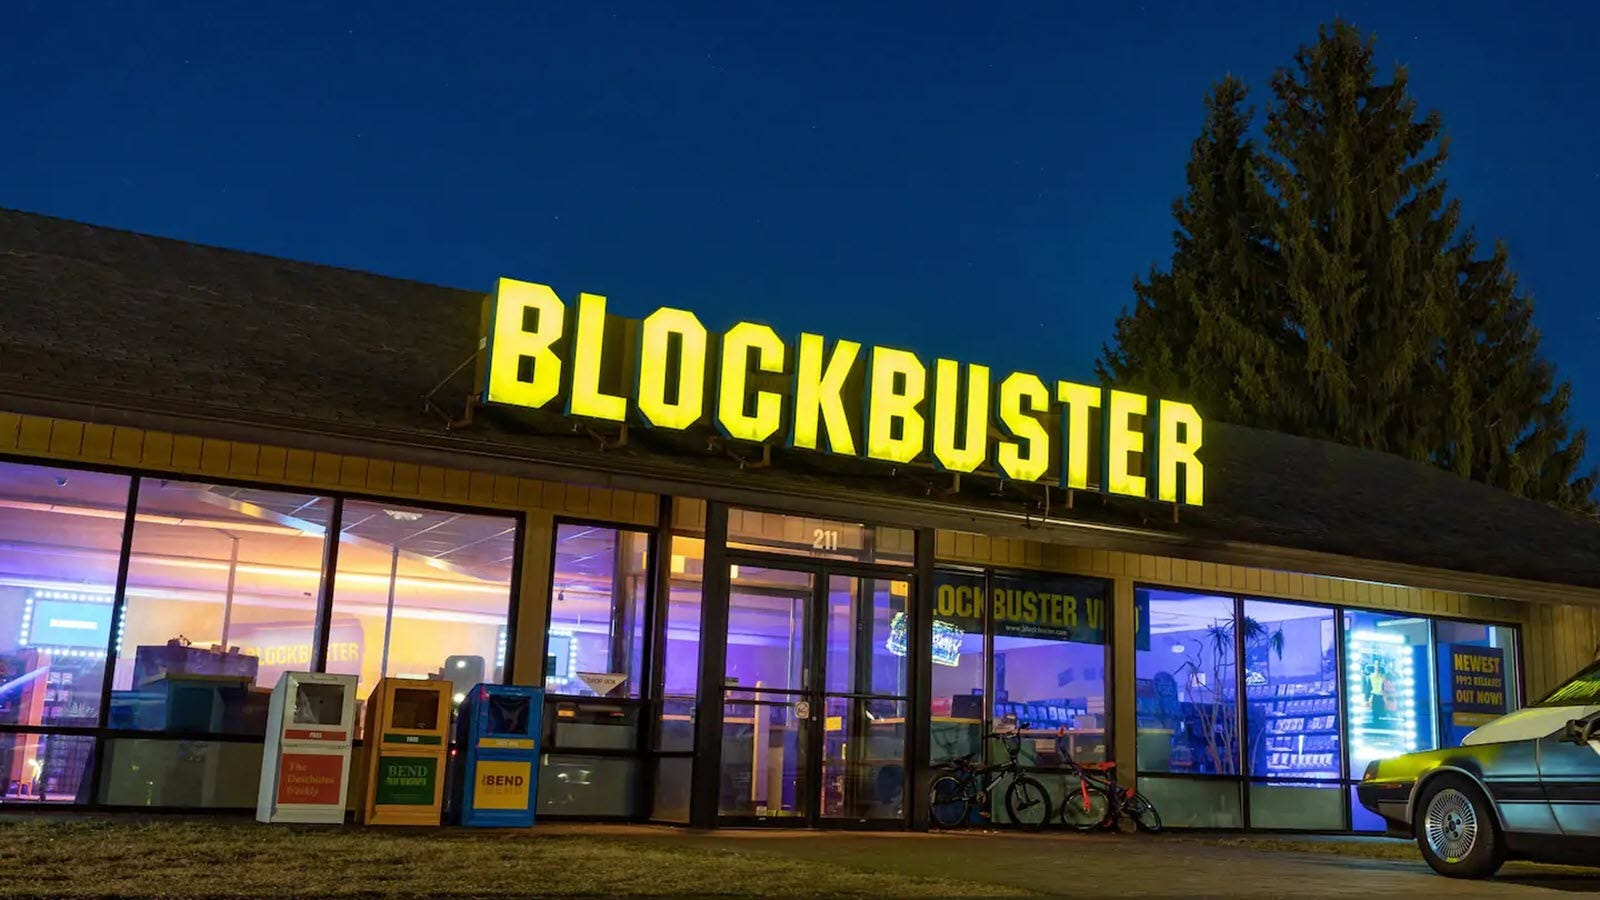 You Can Stay the Night at the Last Blockbuster on Earth, If You Live Nearby